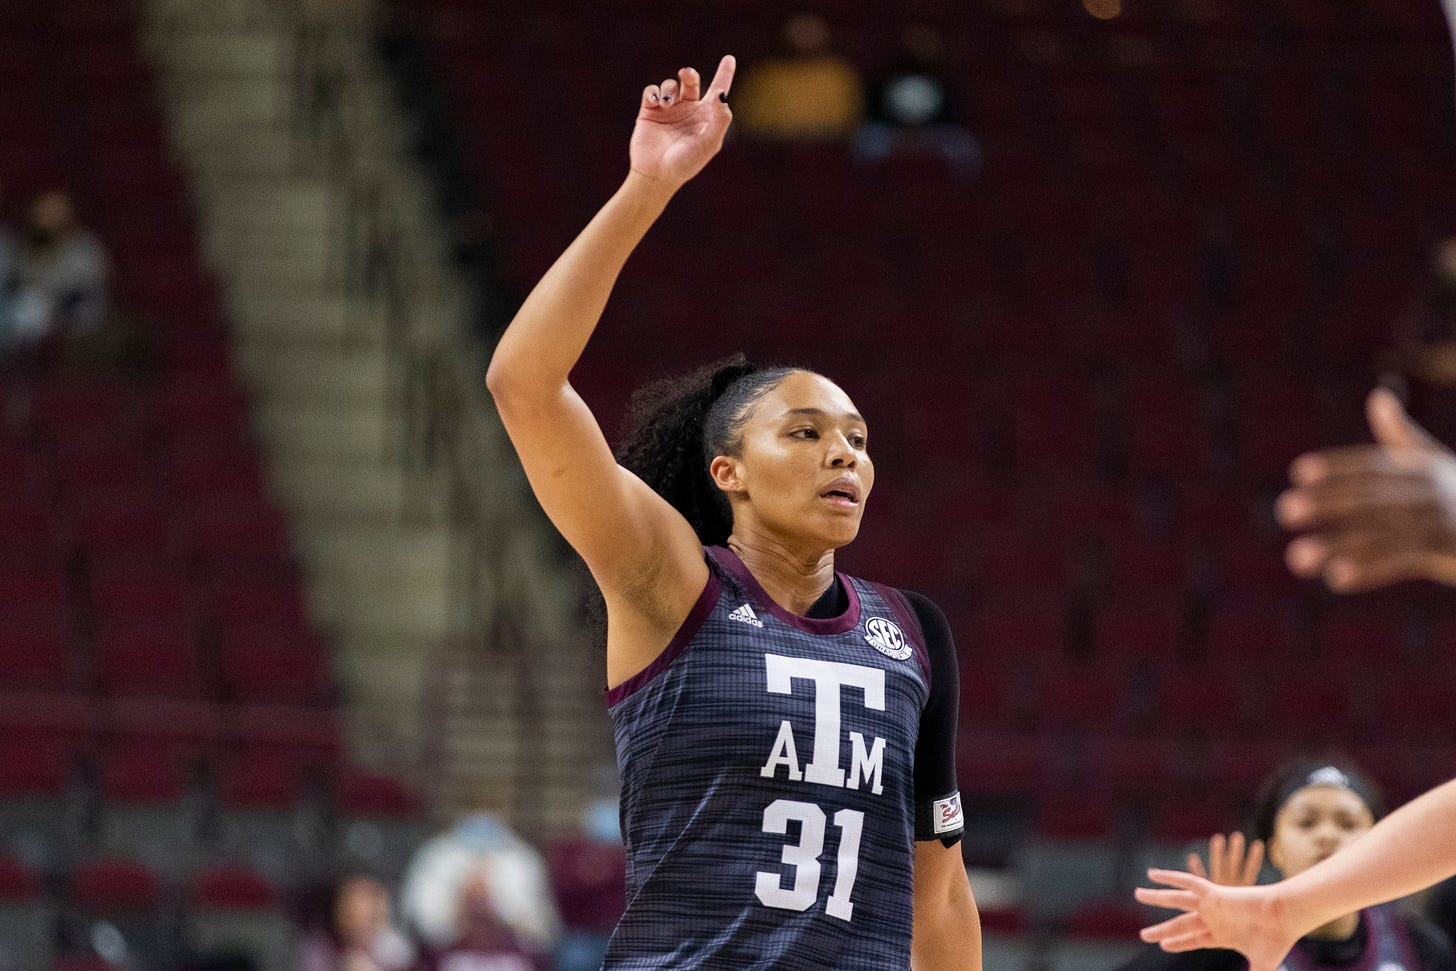 N'dea Jones. (photo courtesy of Texas A&M Athletics/Craig Bisacre & Bailey Orr)